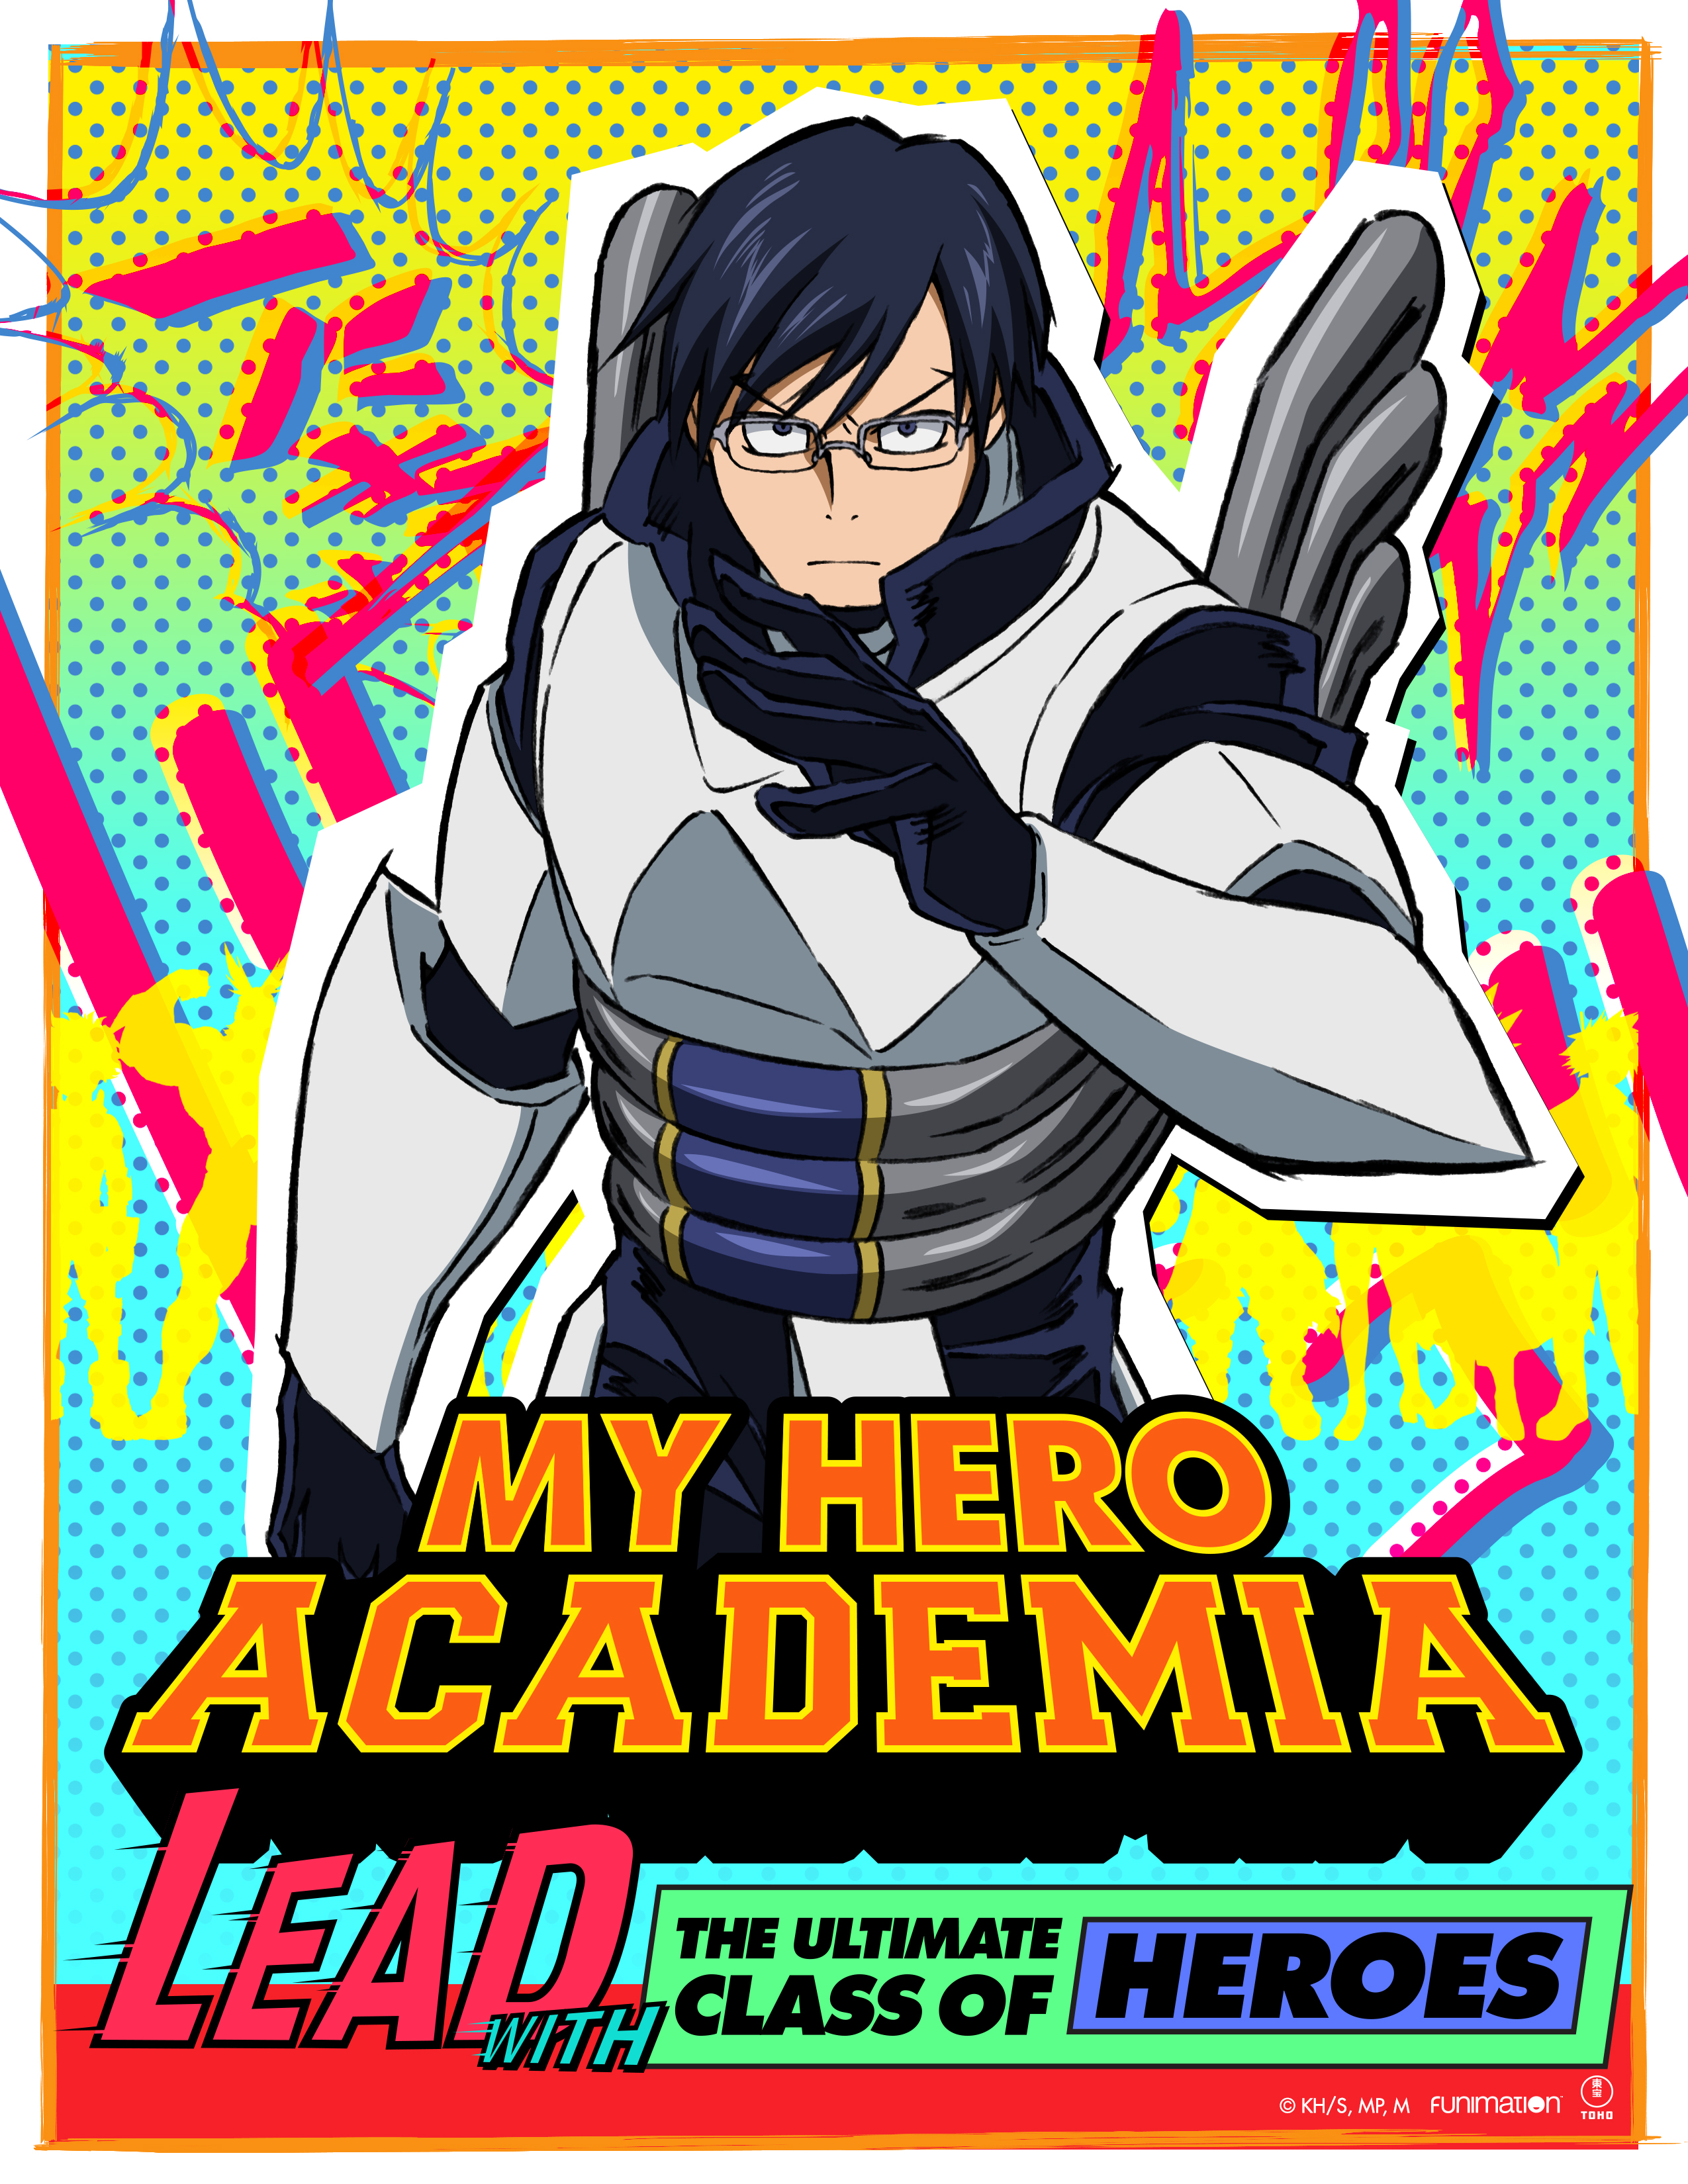 My Hero Academia Cast Announcement - Funimation - Blog!